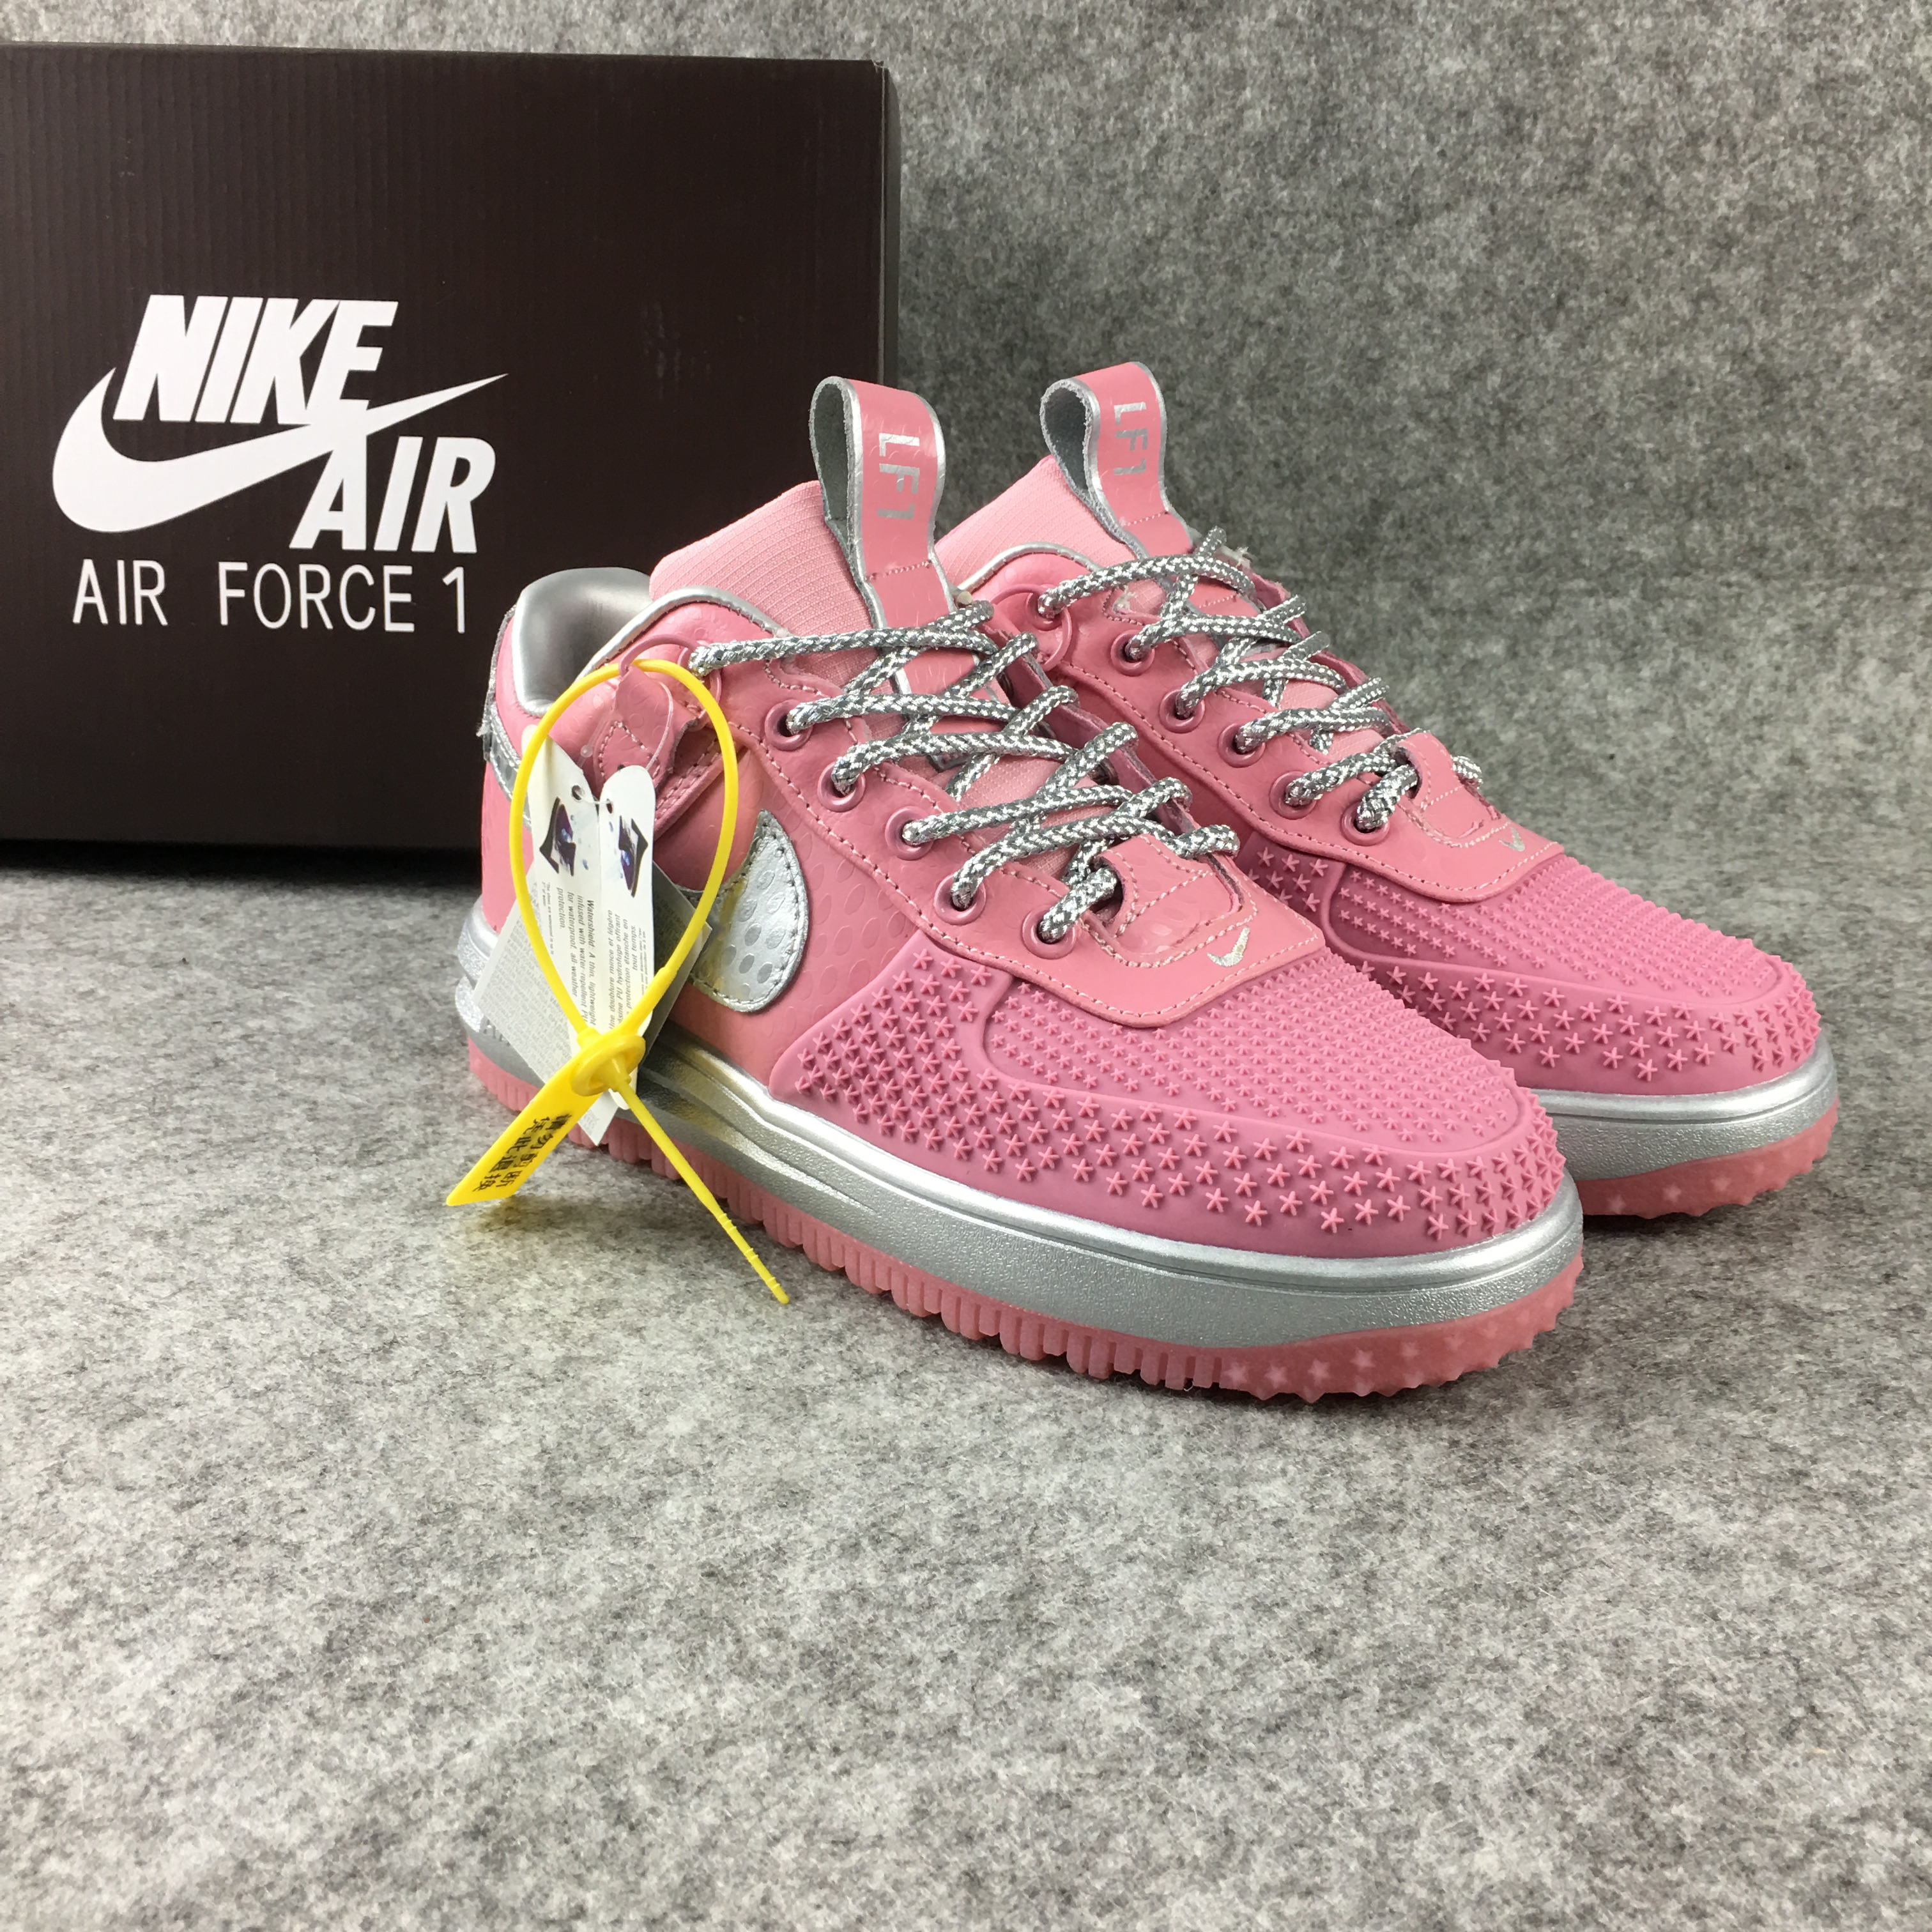 Women Nike Lunar Force 1 Low Pink Silver Shoes